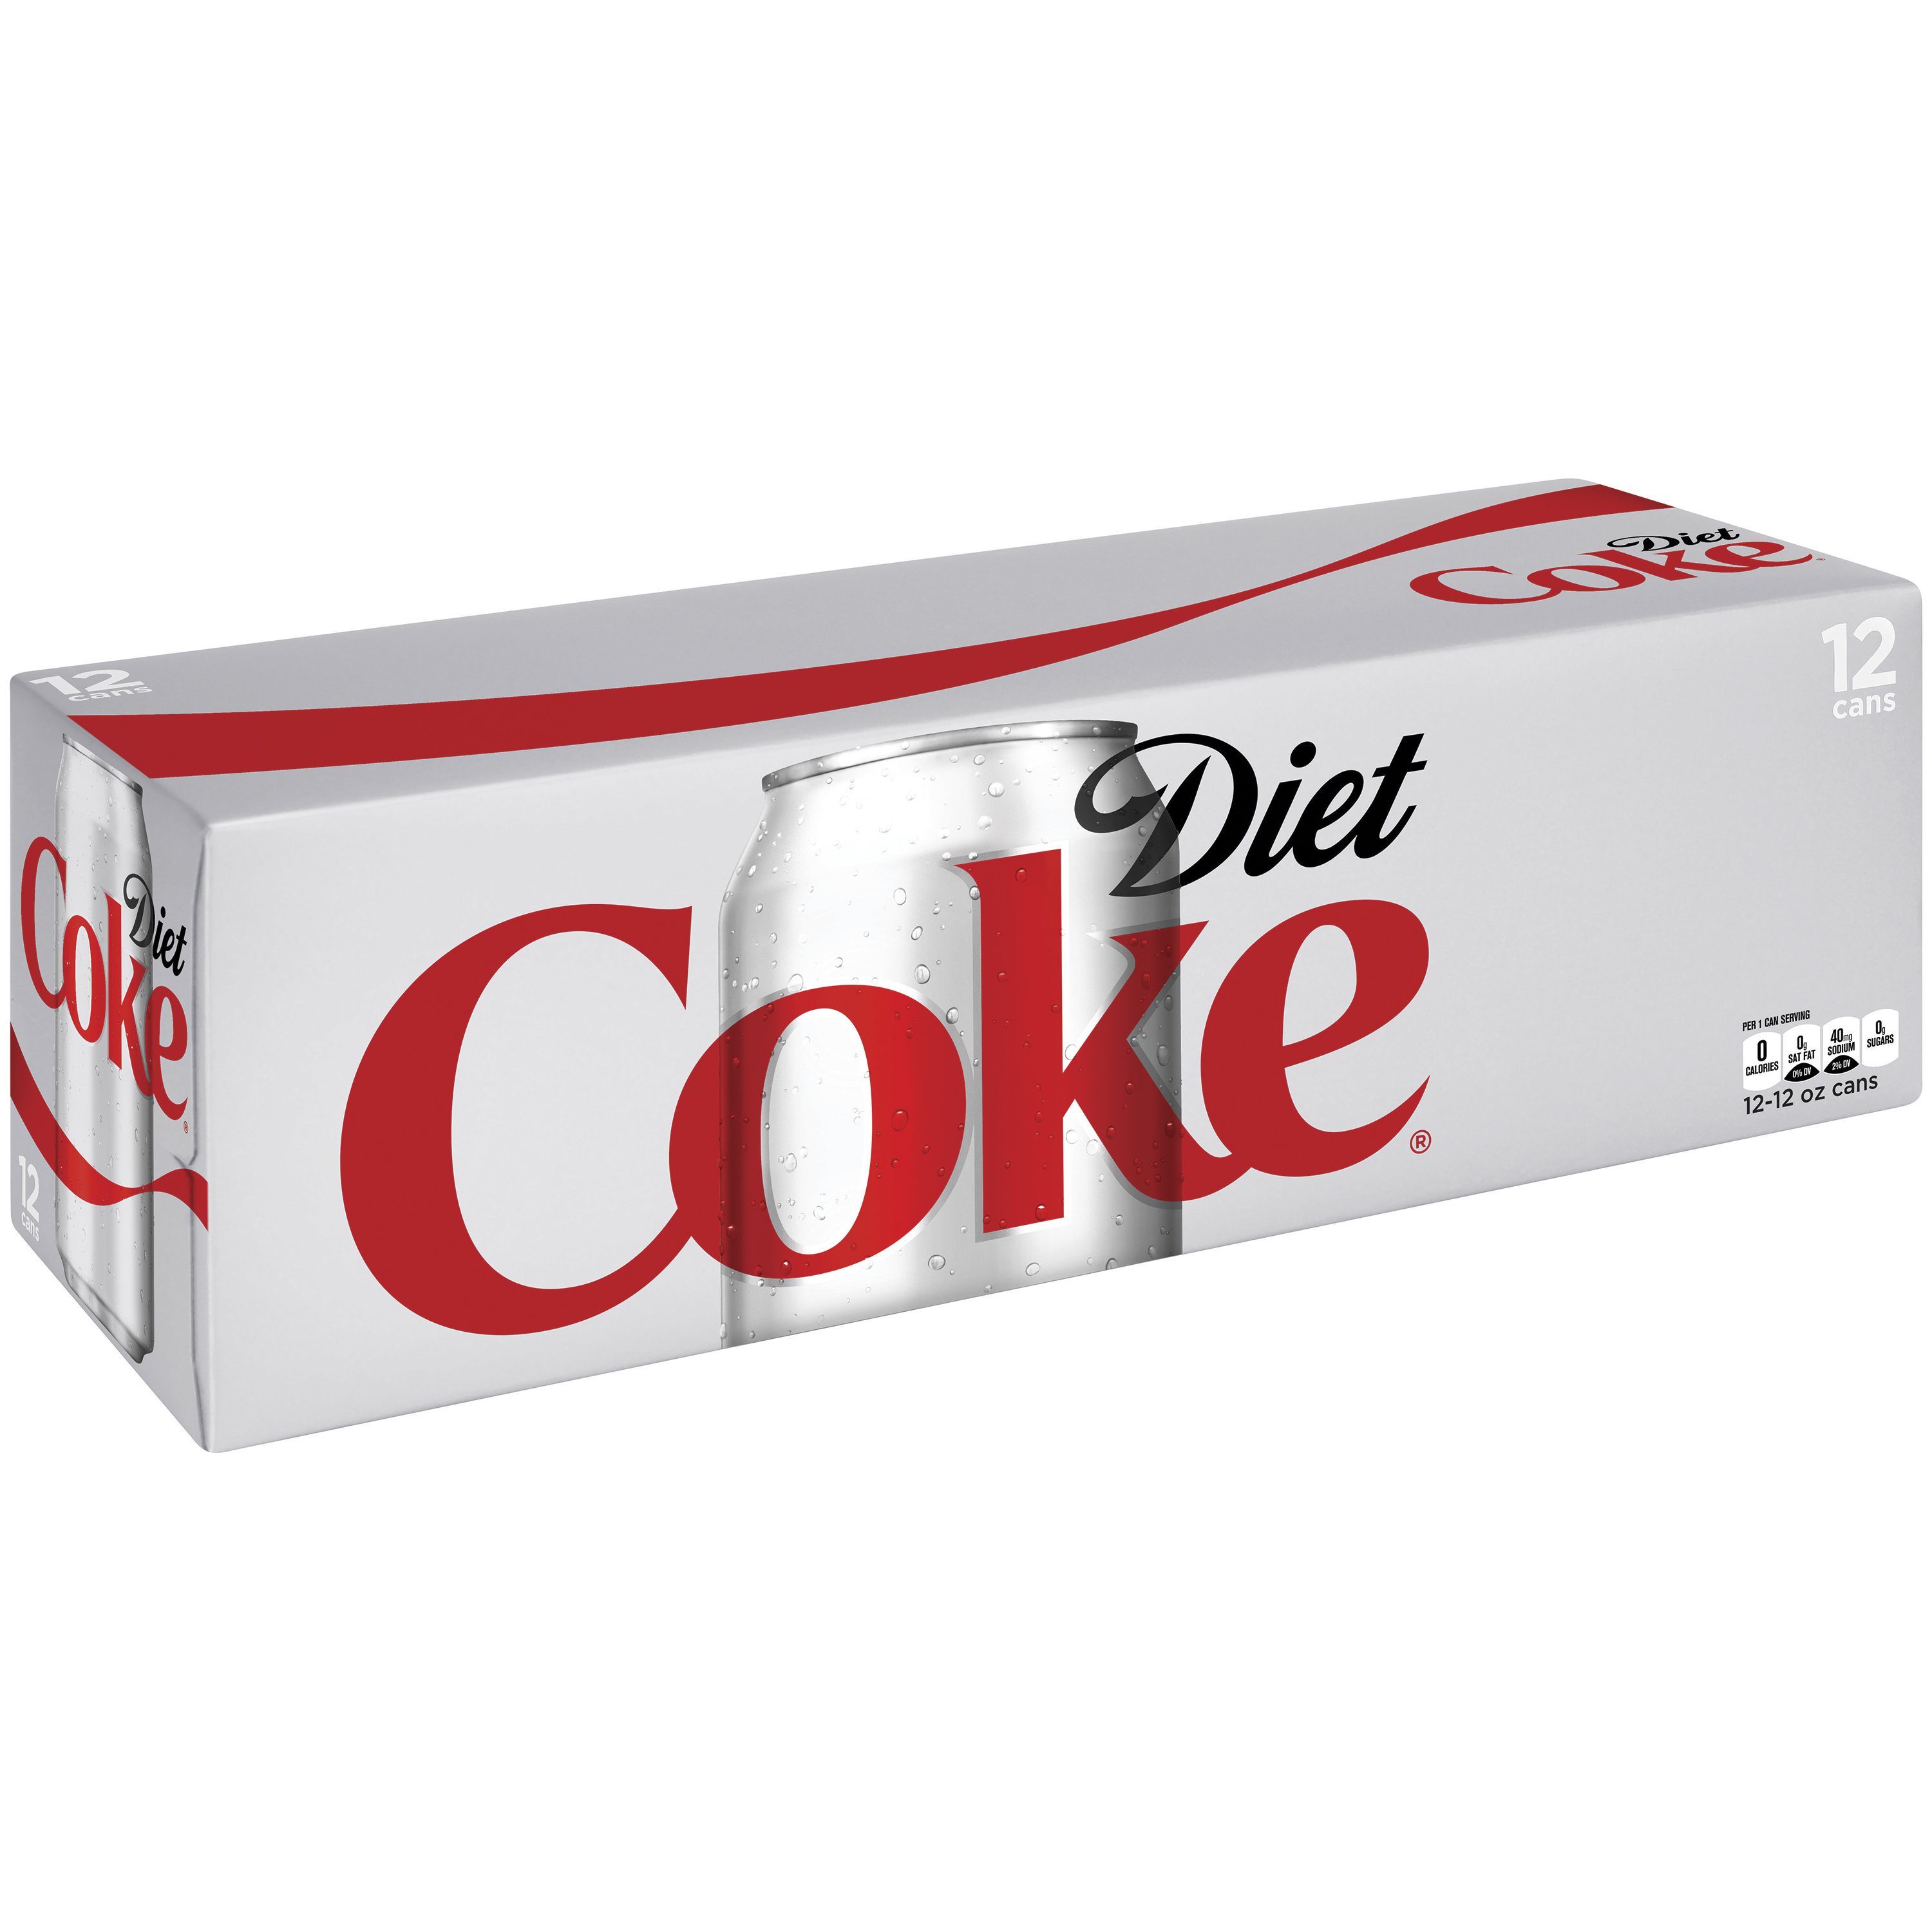 Diet Coca-Cola Diet Soda, 12 Fl Oz, 12 Count